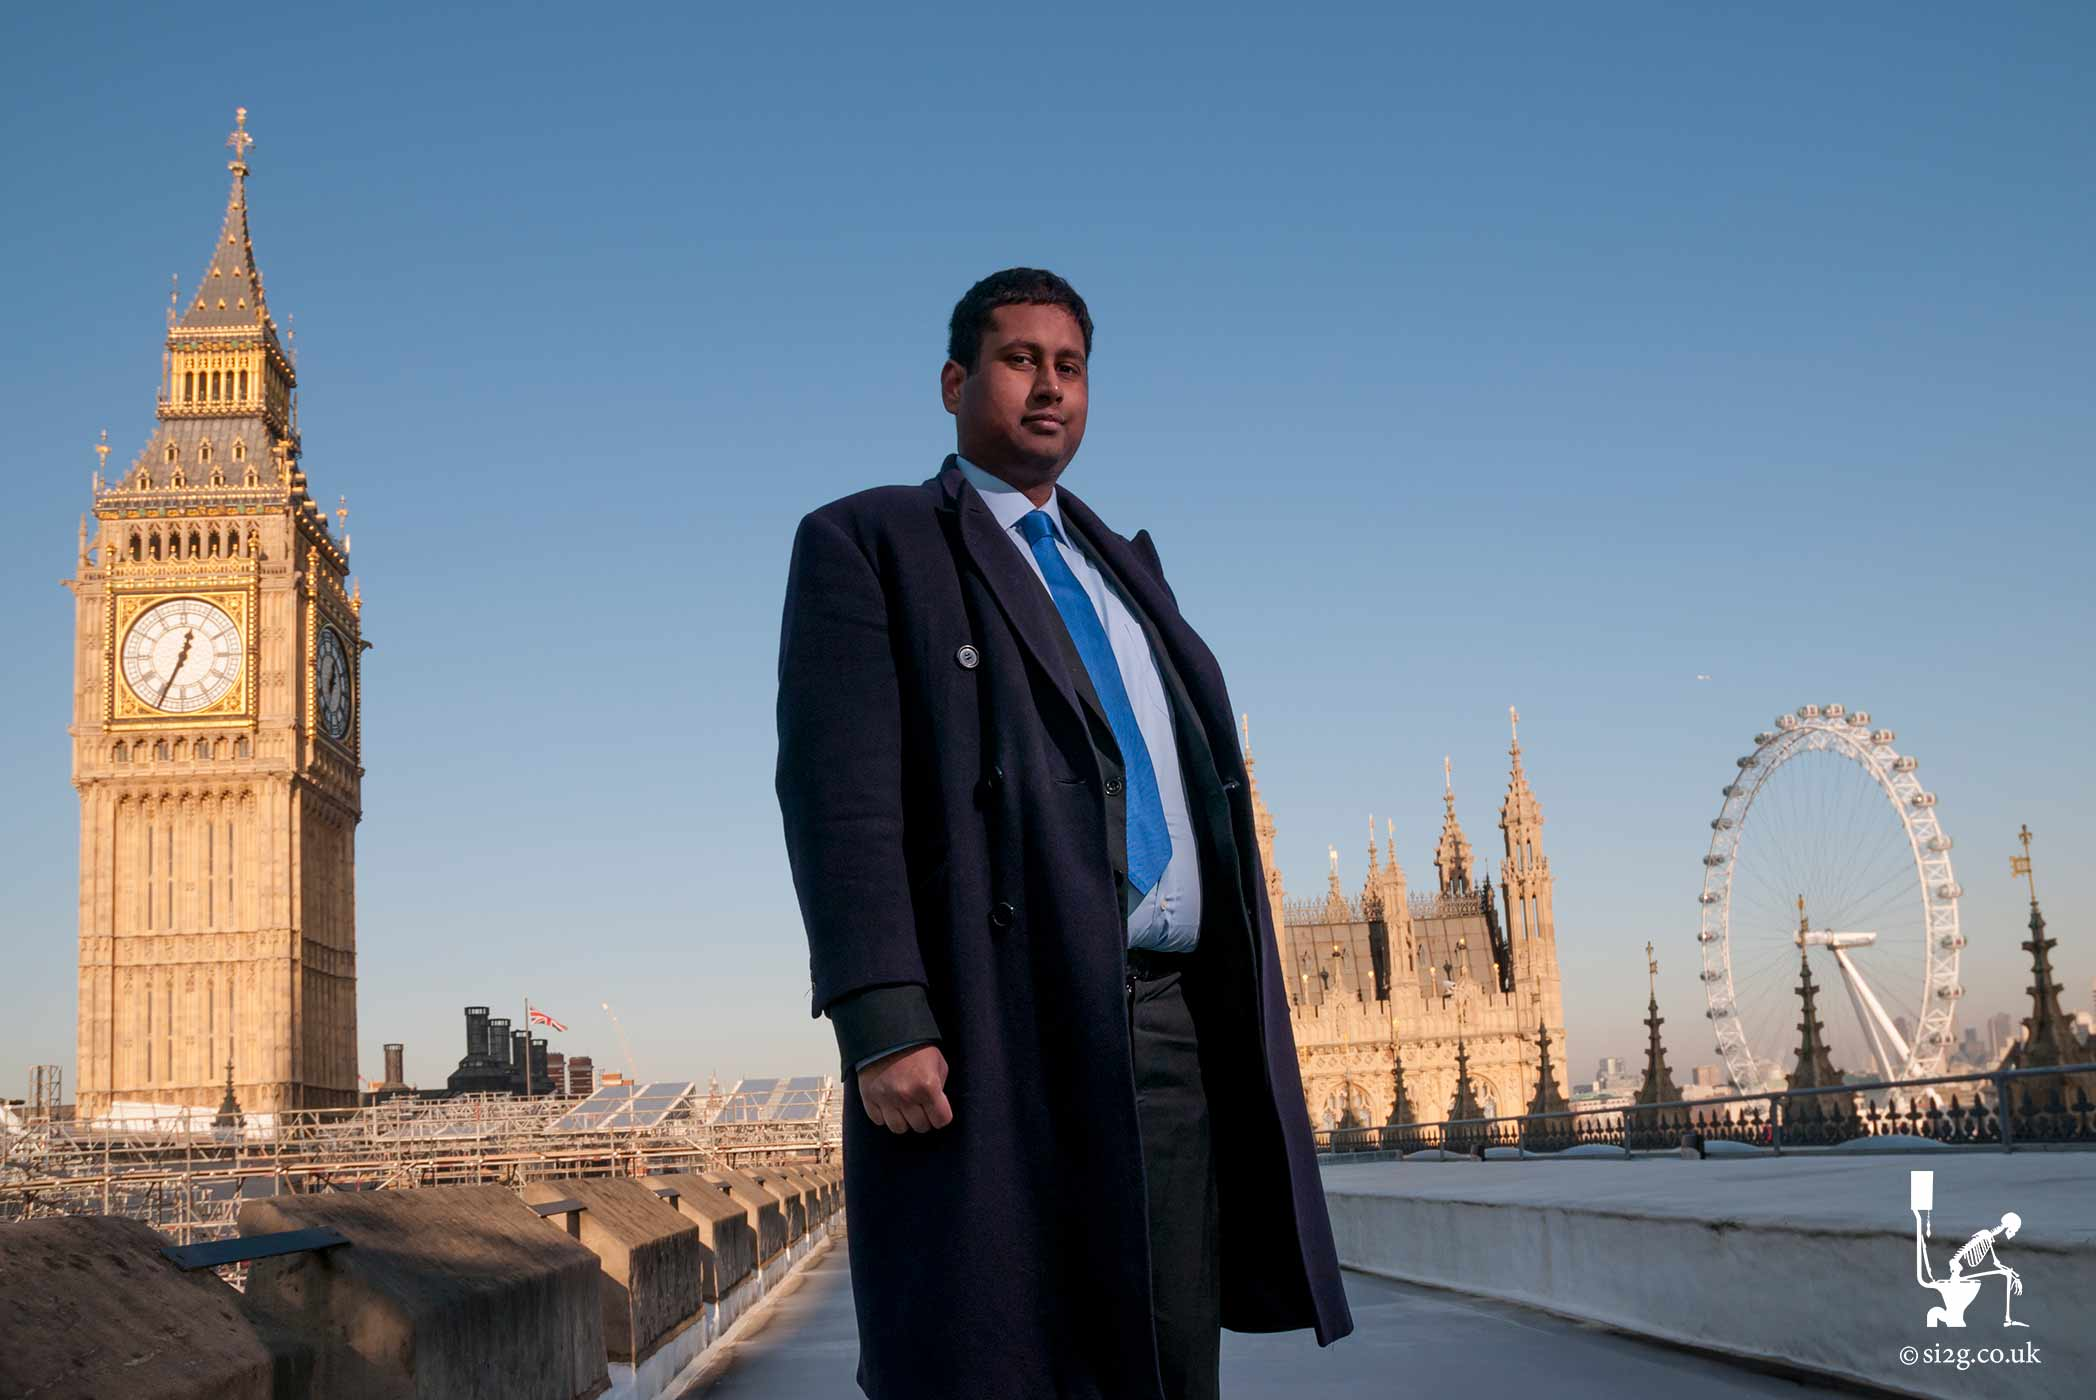 In a Location of Your Choice - Now this portrait is my favourite location shoot so far - on the roof of parliament.  This MEP hired me to take a couple of snaps for his campaign leaflet.  With some spare time at the end he asked if I would mind taking a couple of extra portraits at the Houses of Parliament.  I agreed, thinking we would simply stand on the grass outside, but after a complicated journey through the corridors of the Palace of Westminster, up a creaky-old elevator and around an old spiral staircase we ended up here.